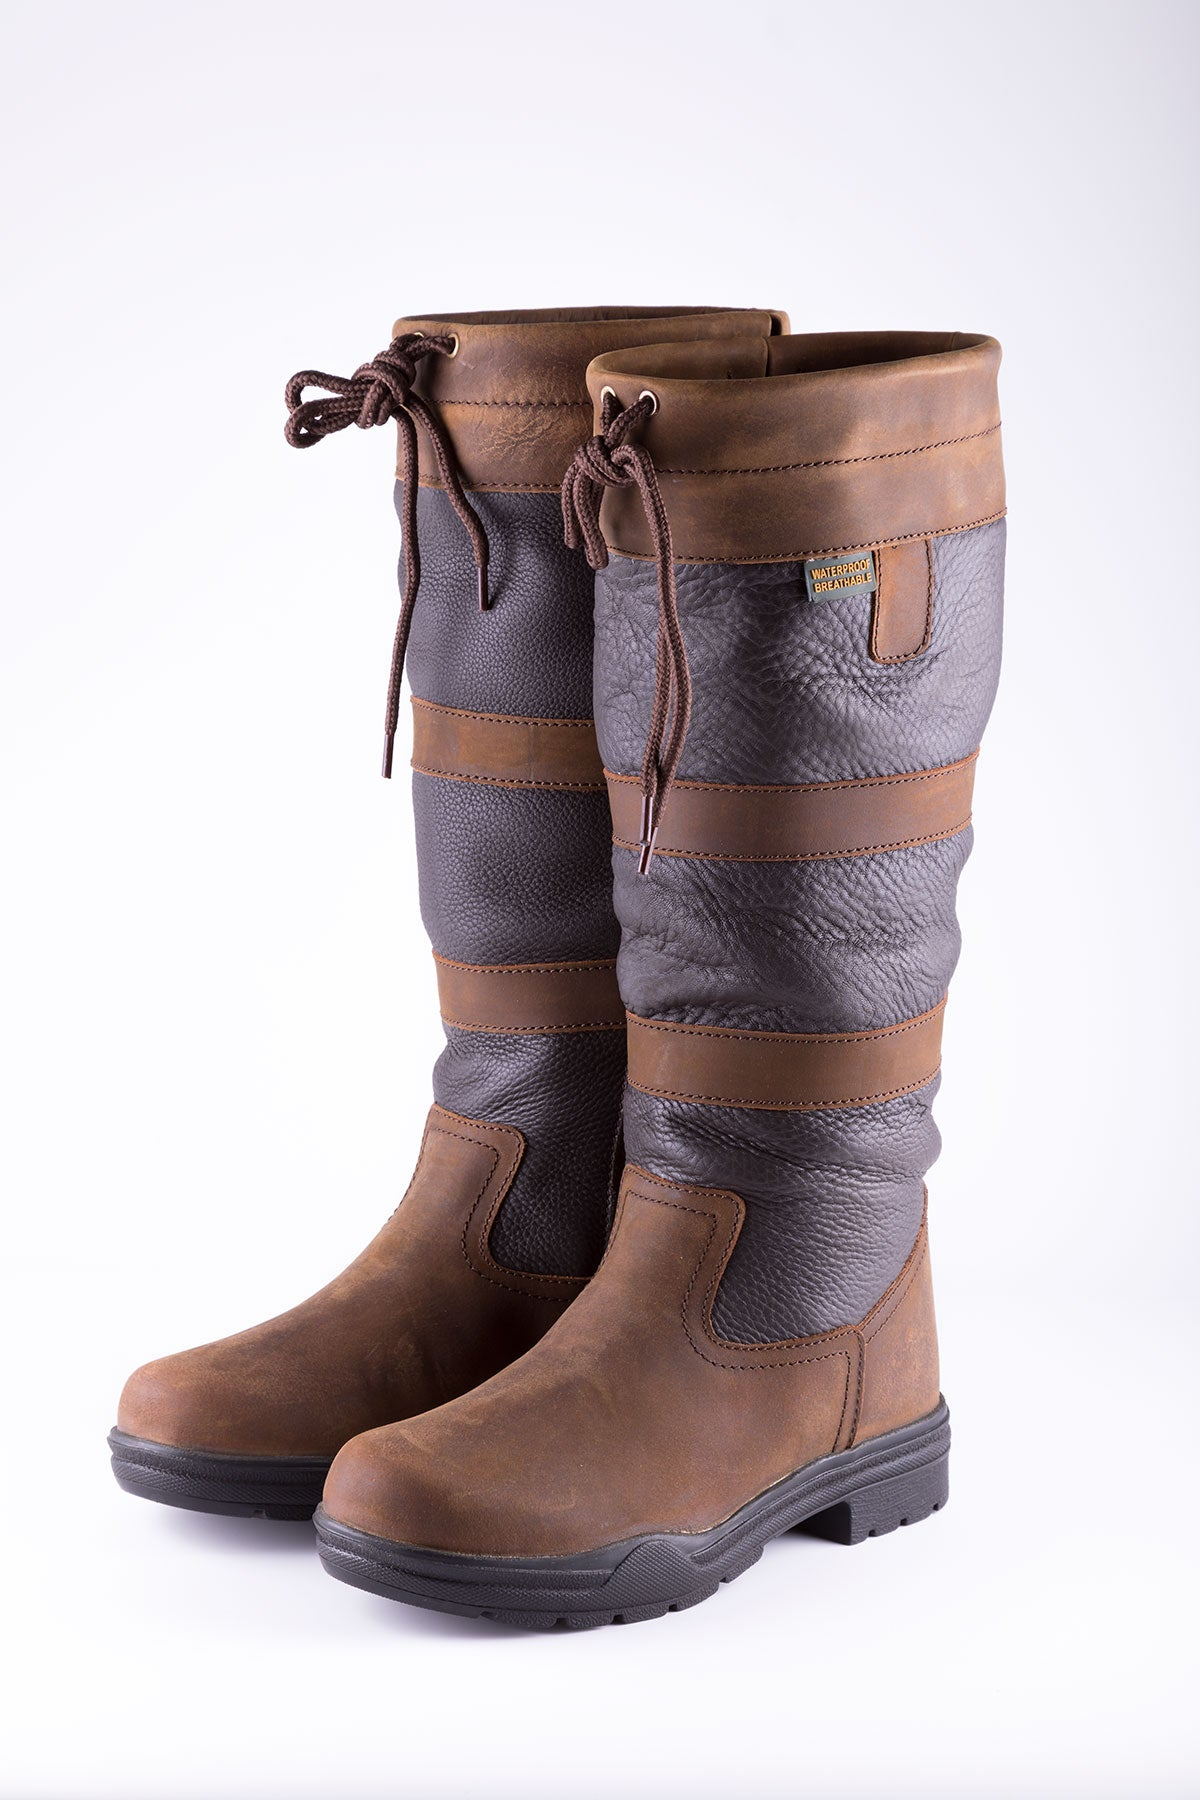 95a4d0011cf Catesby Althorp Country Boots